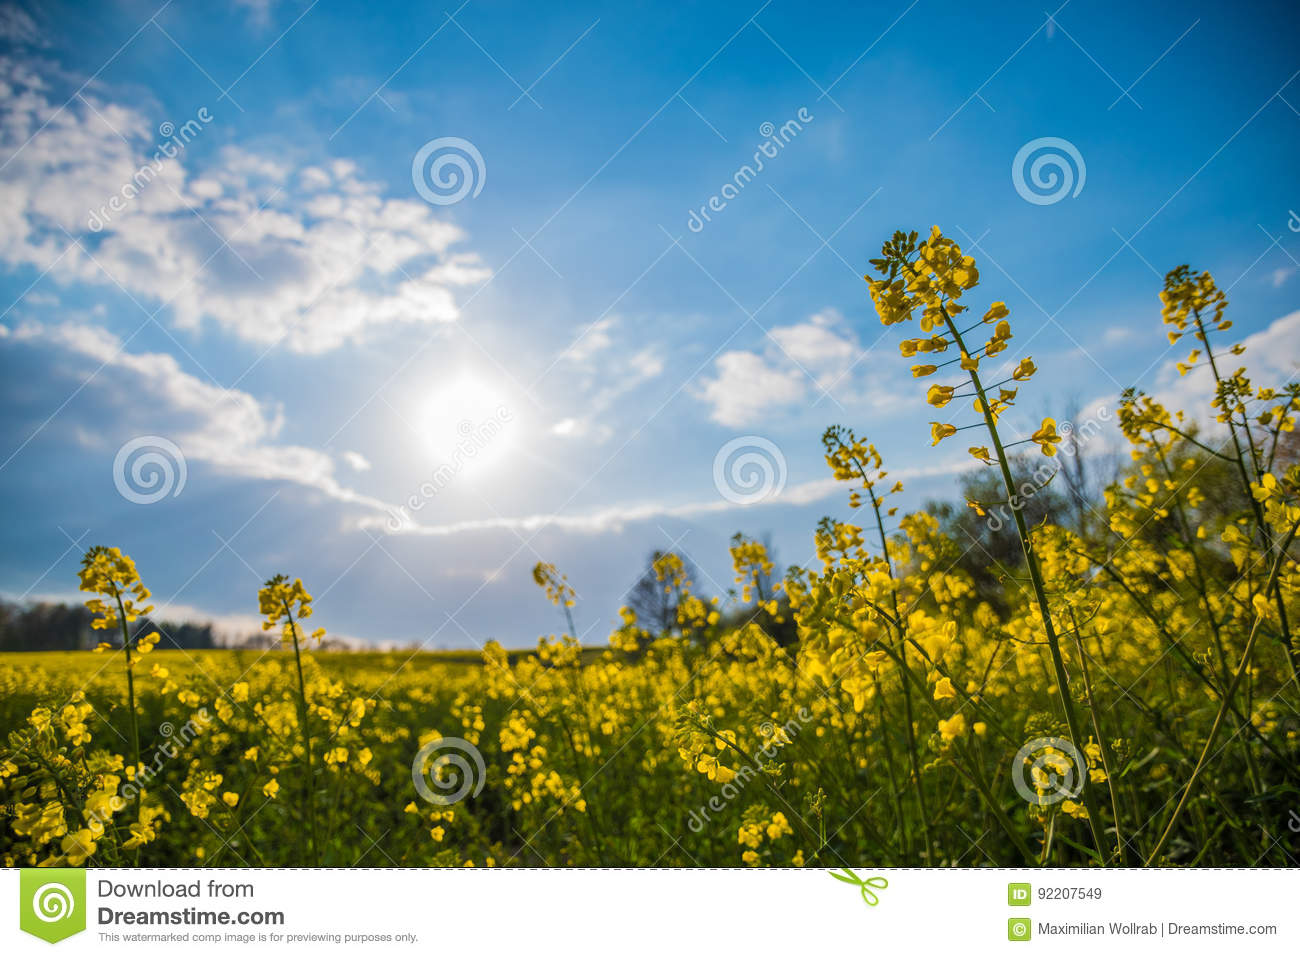 Fop perspective of meadow yellow blossoms sunlight spring